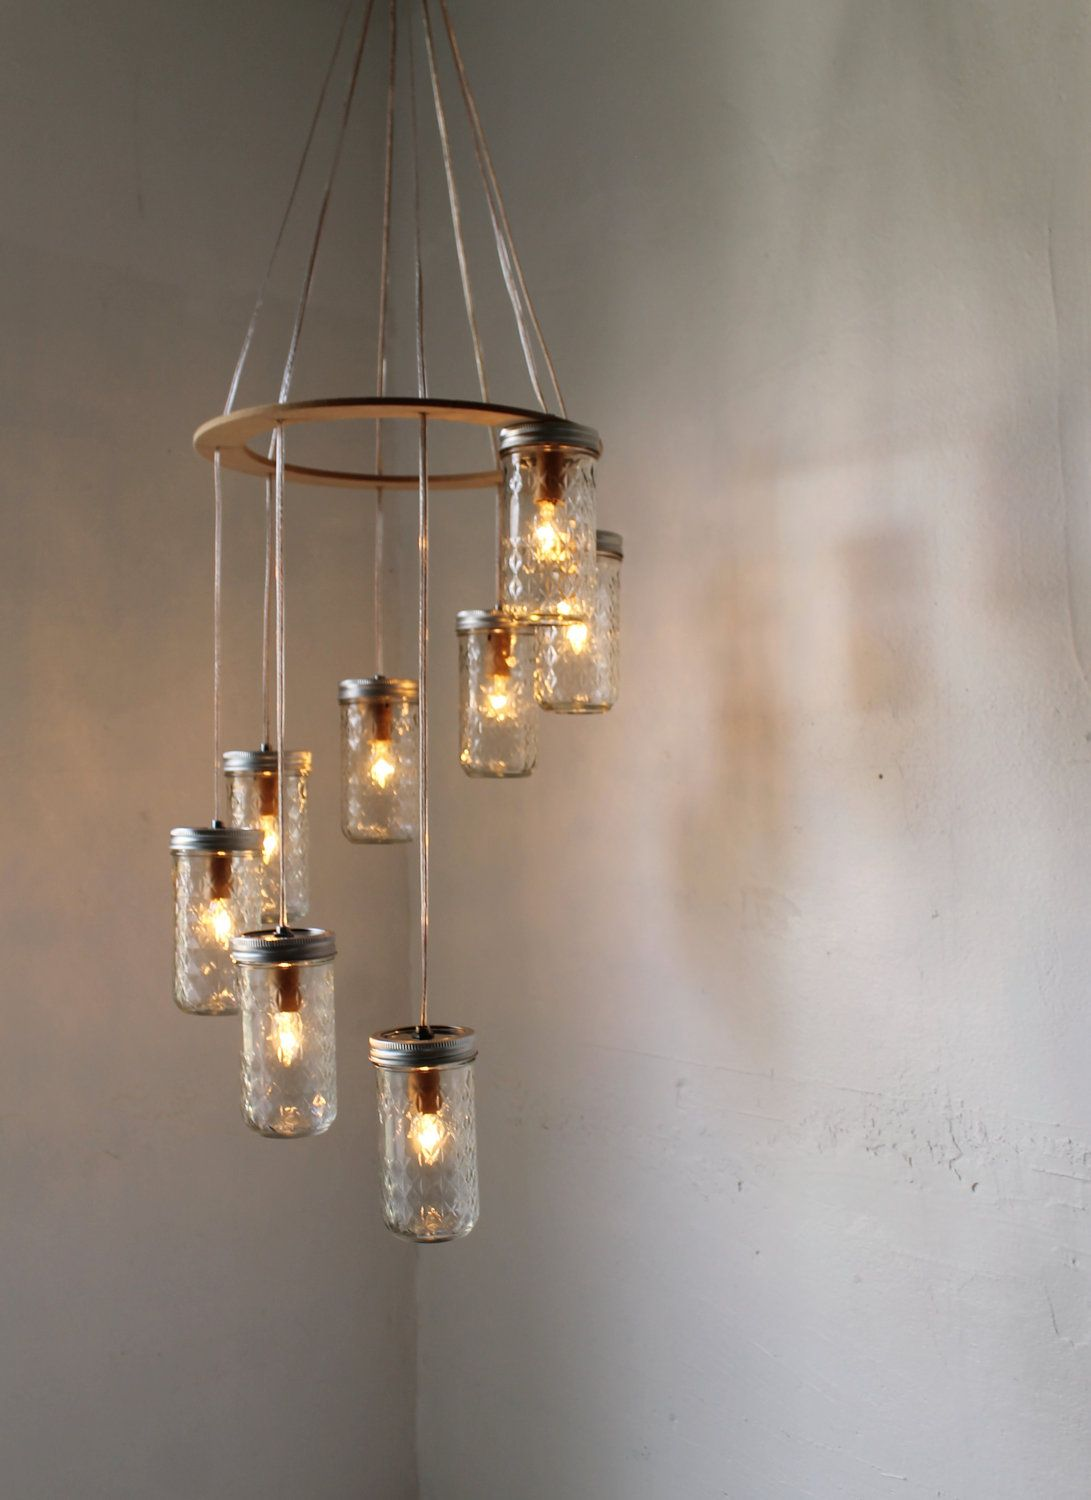 Uncategorized Canning Jar Lights Chandelier 16 modern handmade lighting ideas for a unique atmosphere jars atmosphere